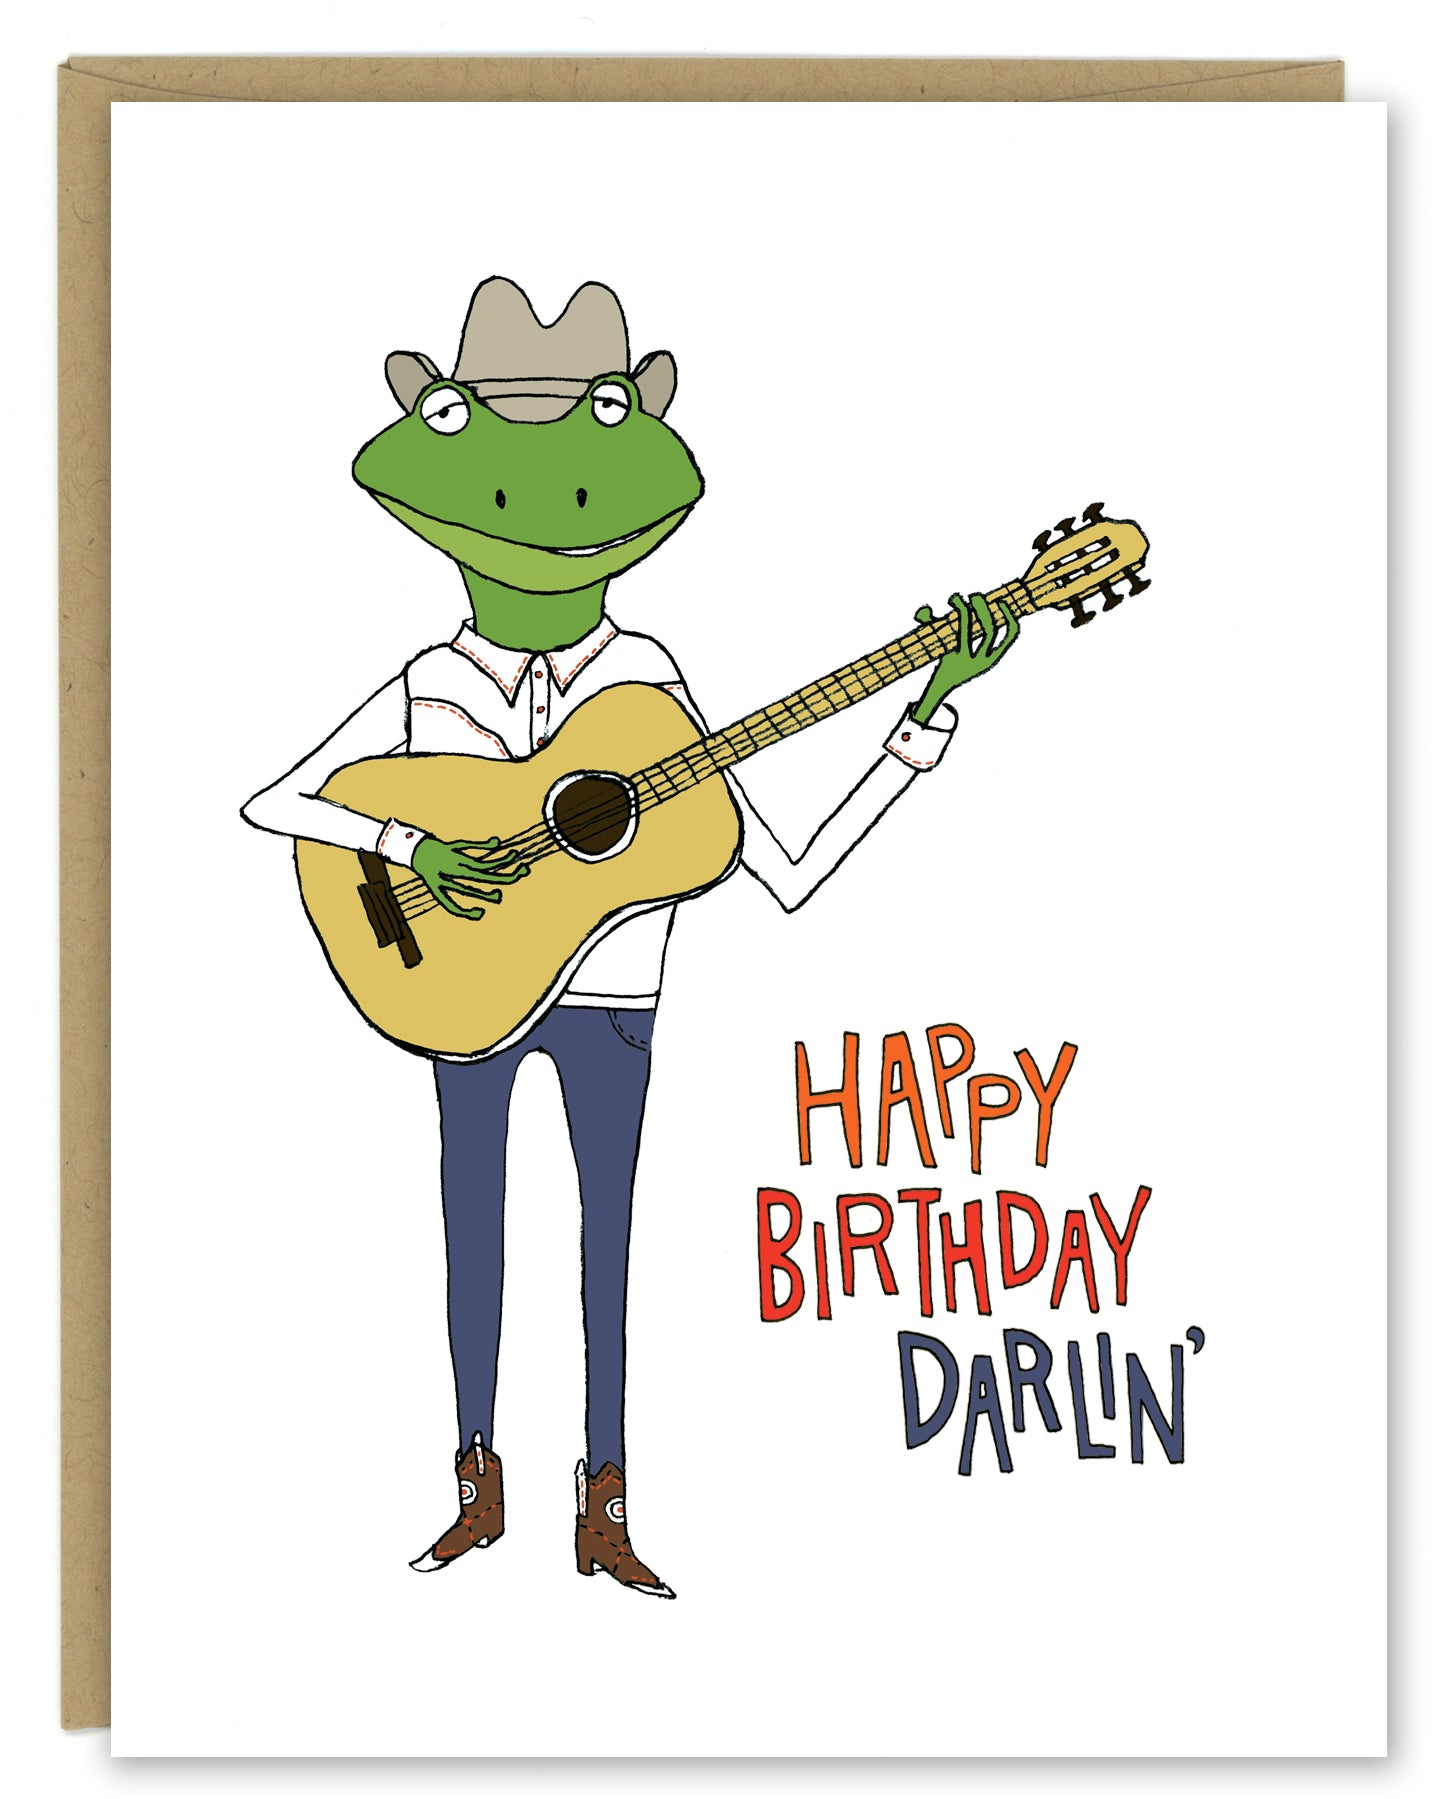 A greeting card showing a hand-drawn illustration of a frog playing a guitar, wearing cowboy boots, a cowboy hat, jeans and a white Western shirt. Shown with a Kraft paper envelope on a white background.